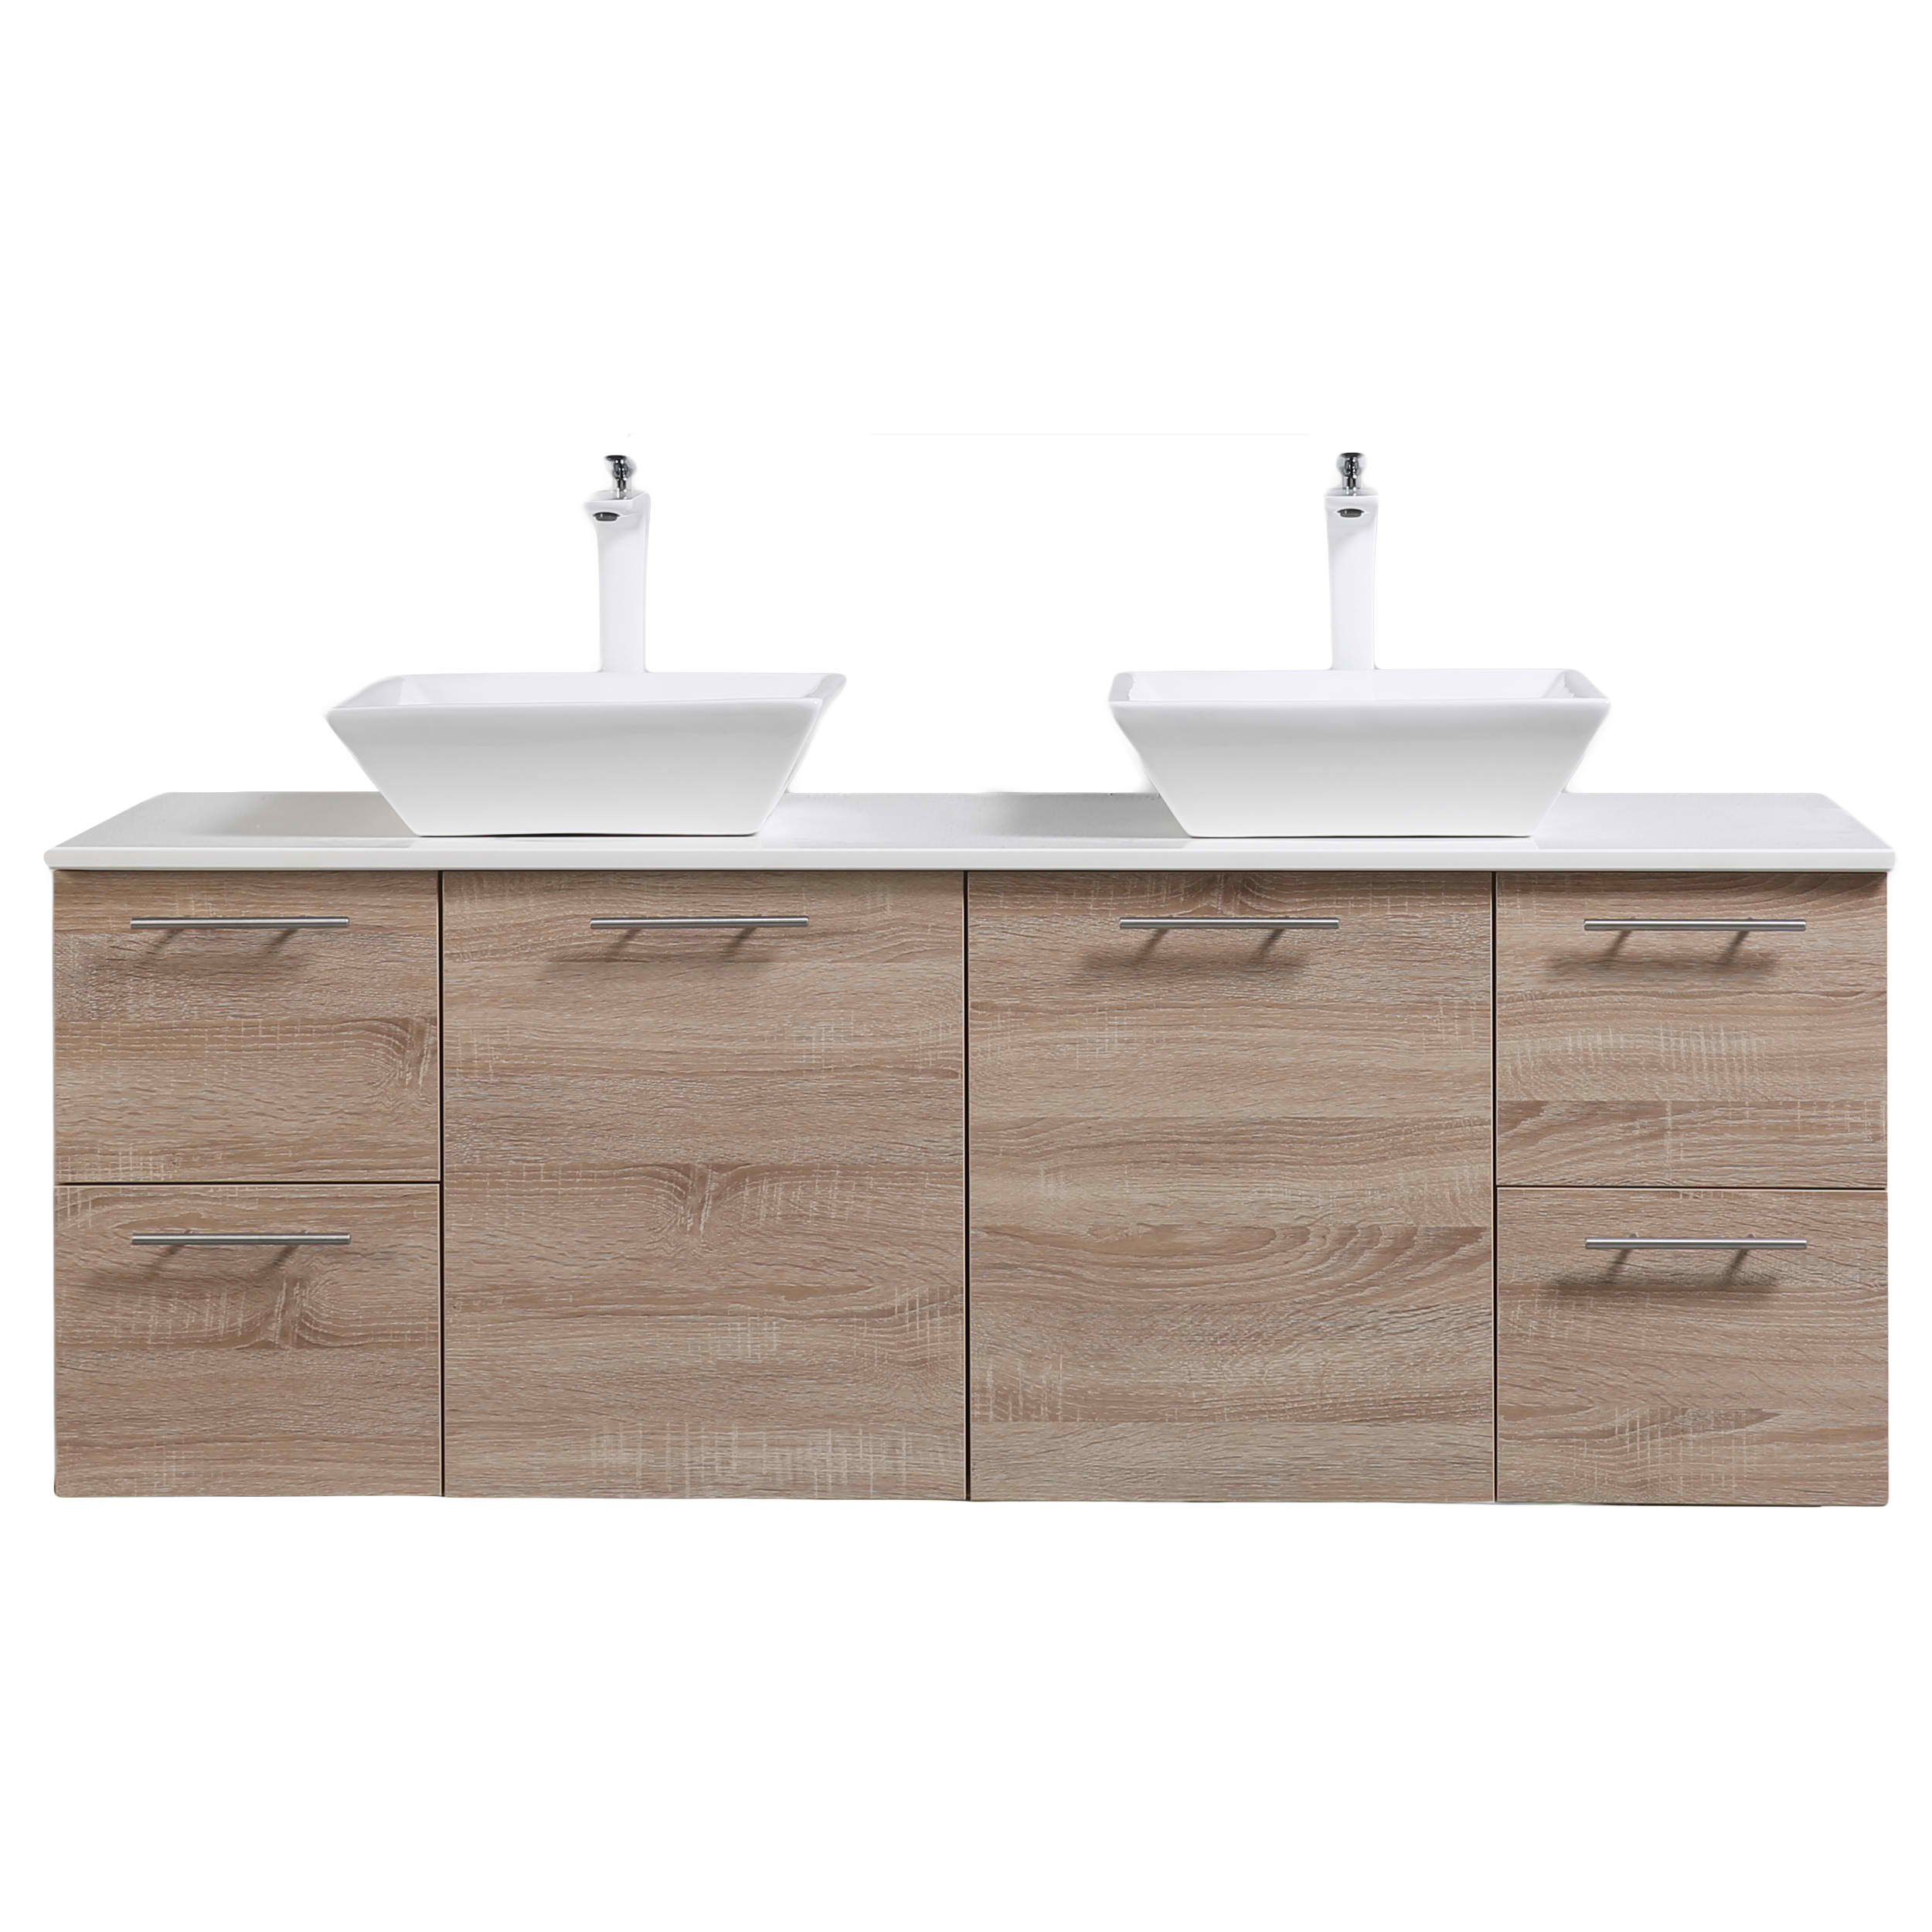 "Luxury 60"" White Oak Wall Mounted Bathroom Vanity with Glassos Top and Double Vessel Sinks"